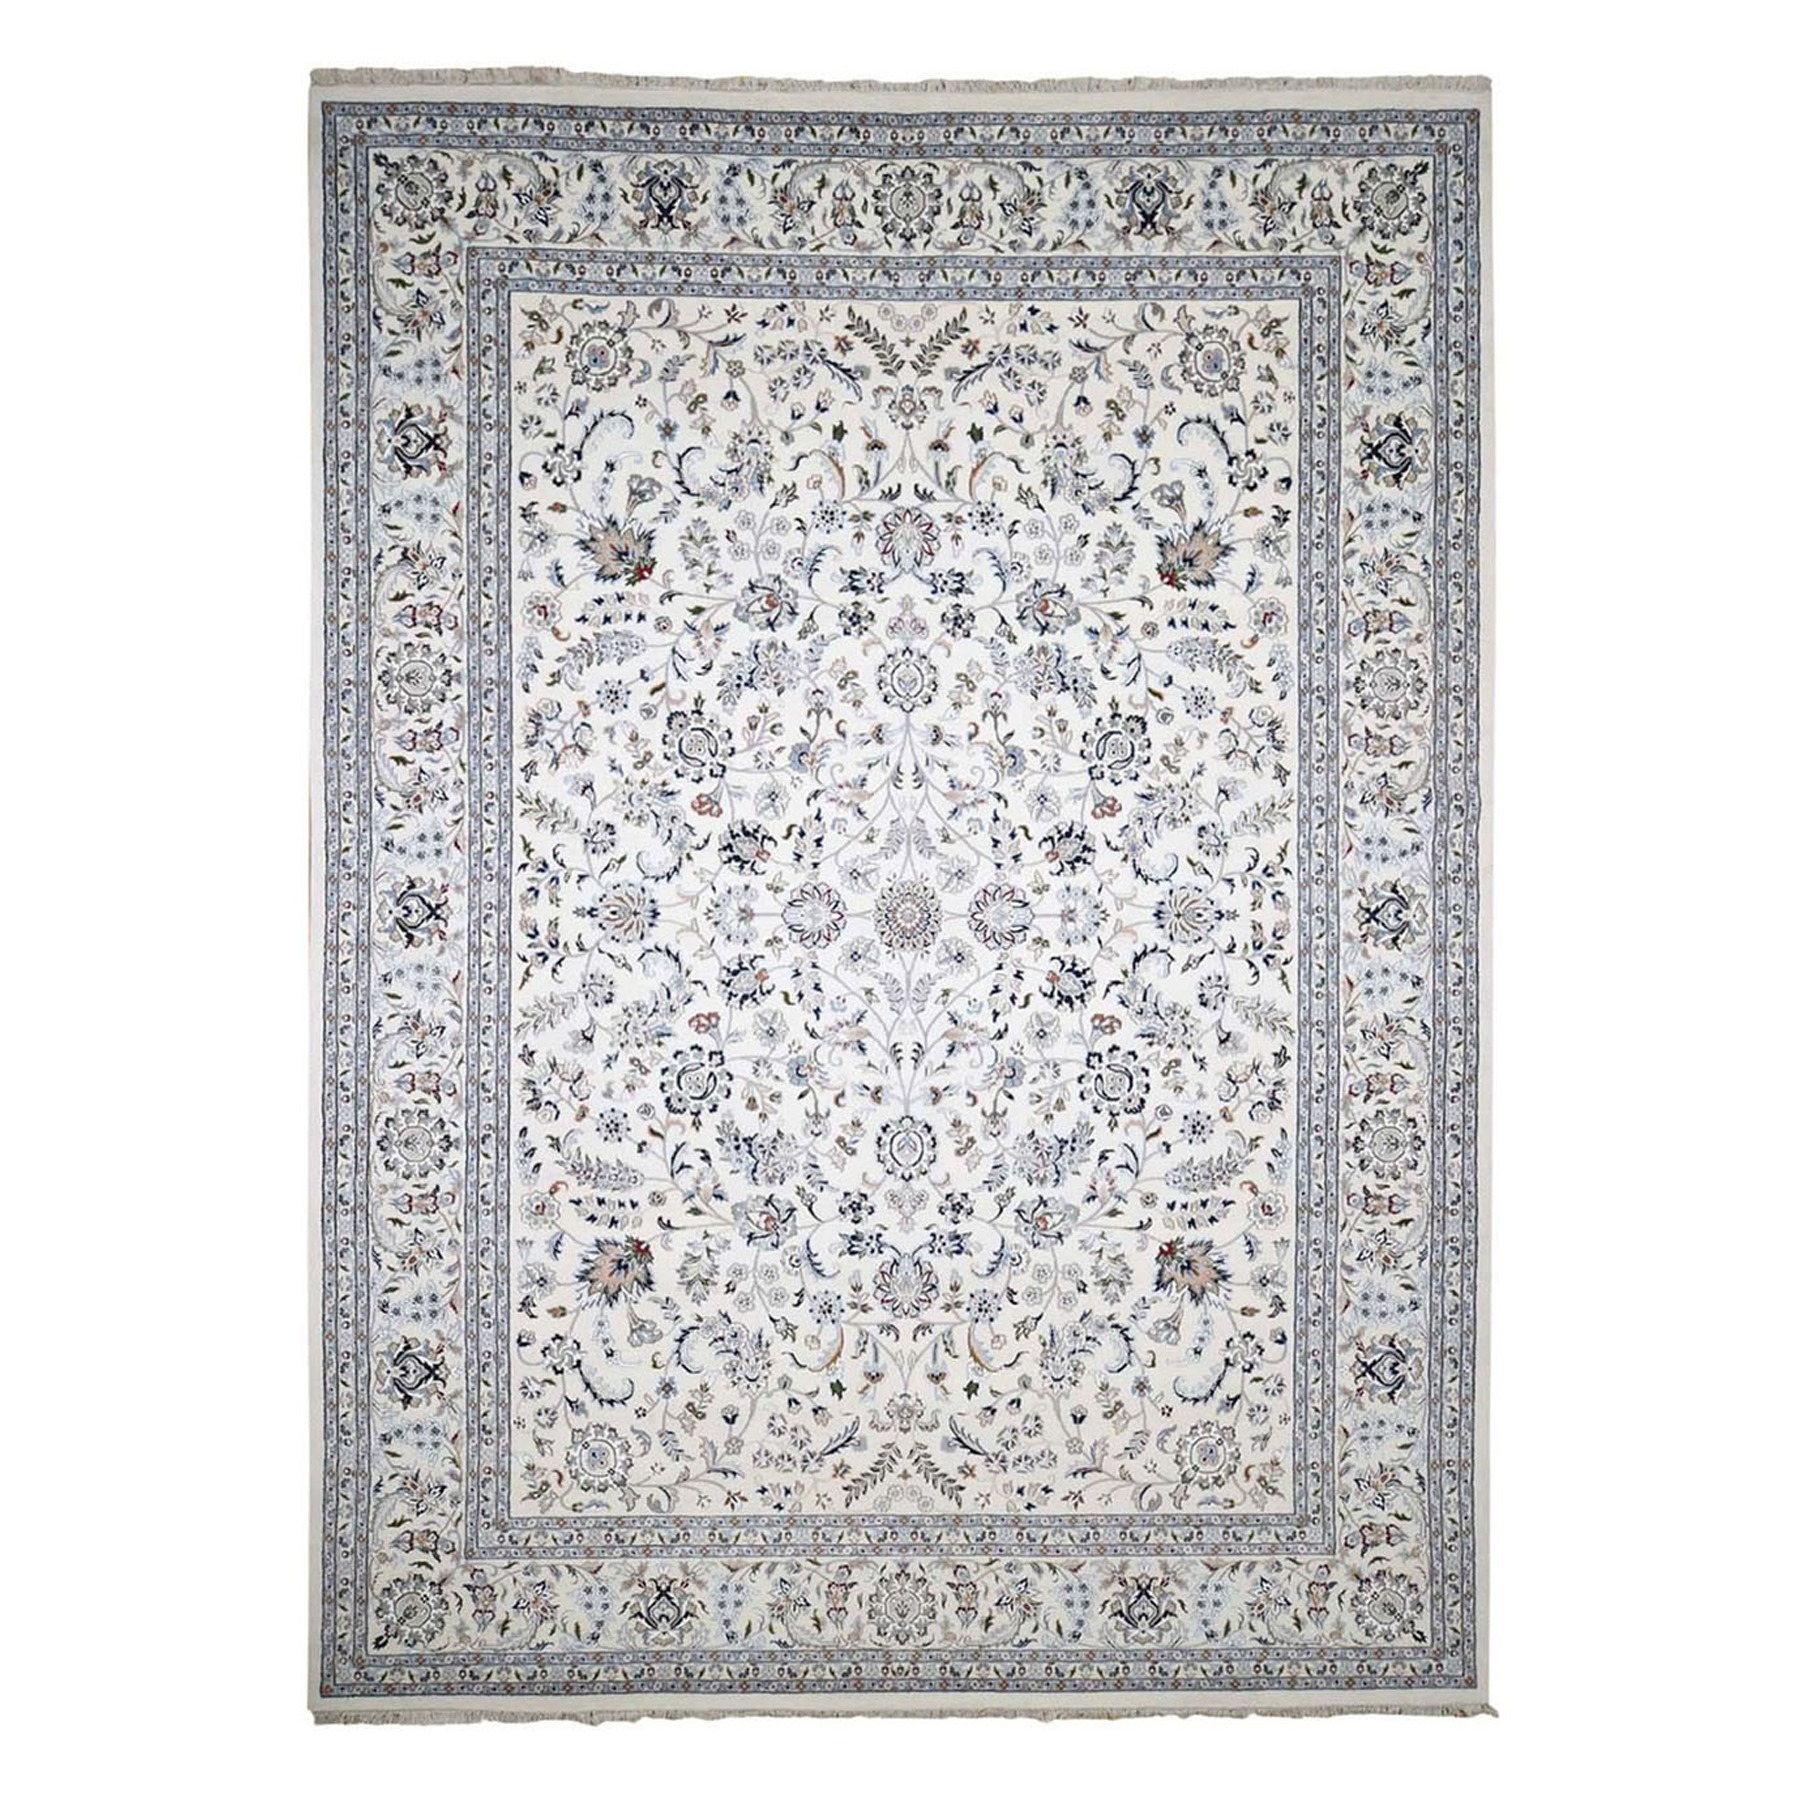 Pirniakan Collection Hand Knotted Ivory Rug No: 1133376